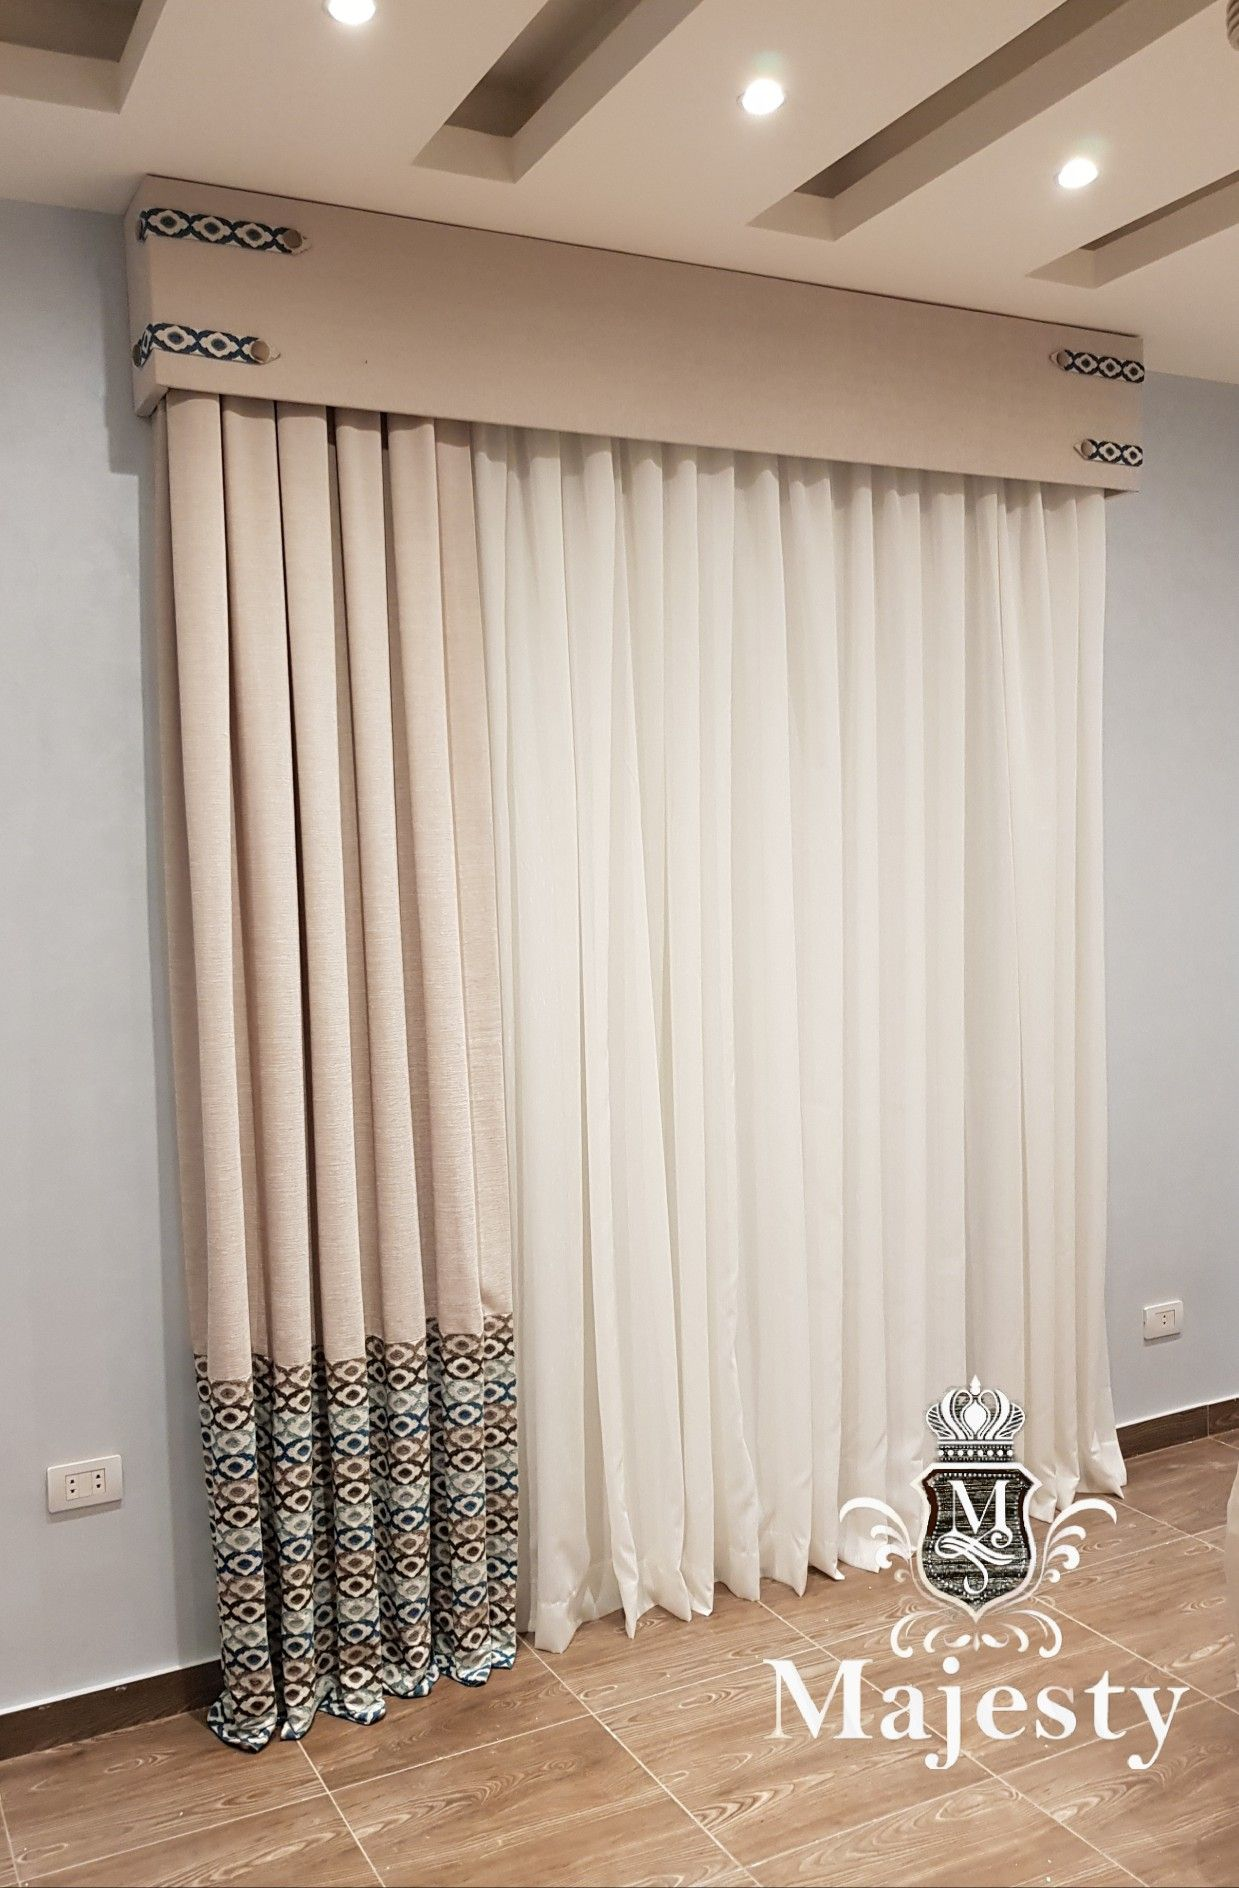 Pin By Mohamed Albanhawy On Majesty Curtain Designs For Bedroom Home Room Design Home Curtains